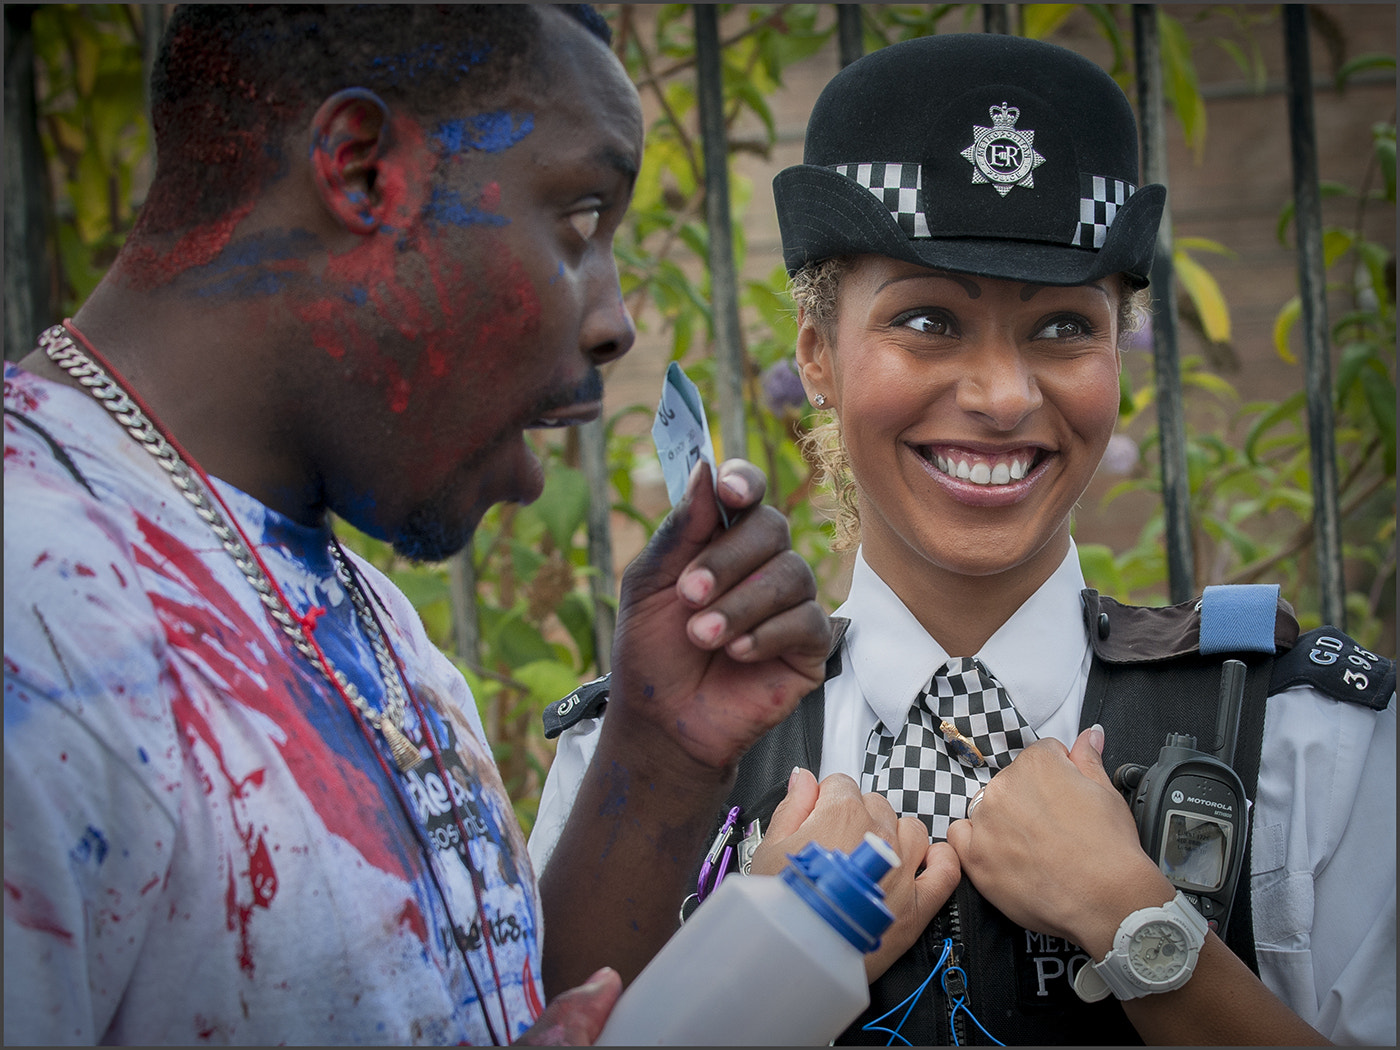 Photograph Police Woman being Teased by Tony Smith on 500px